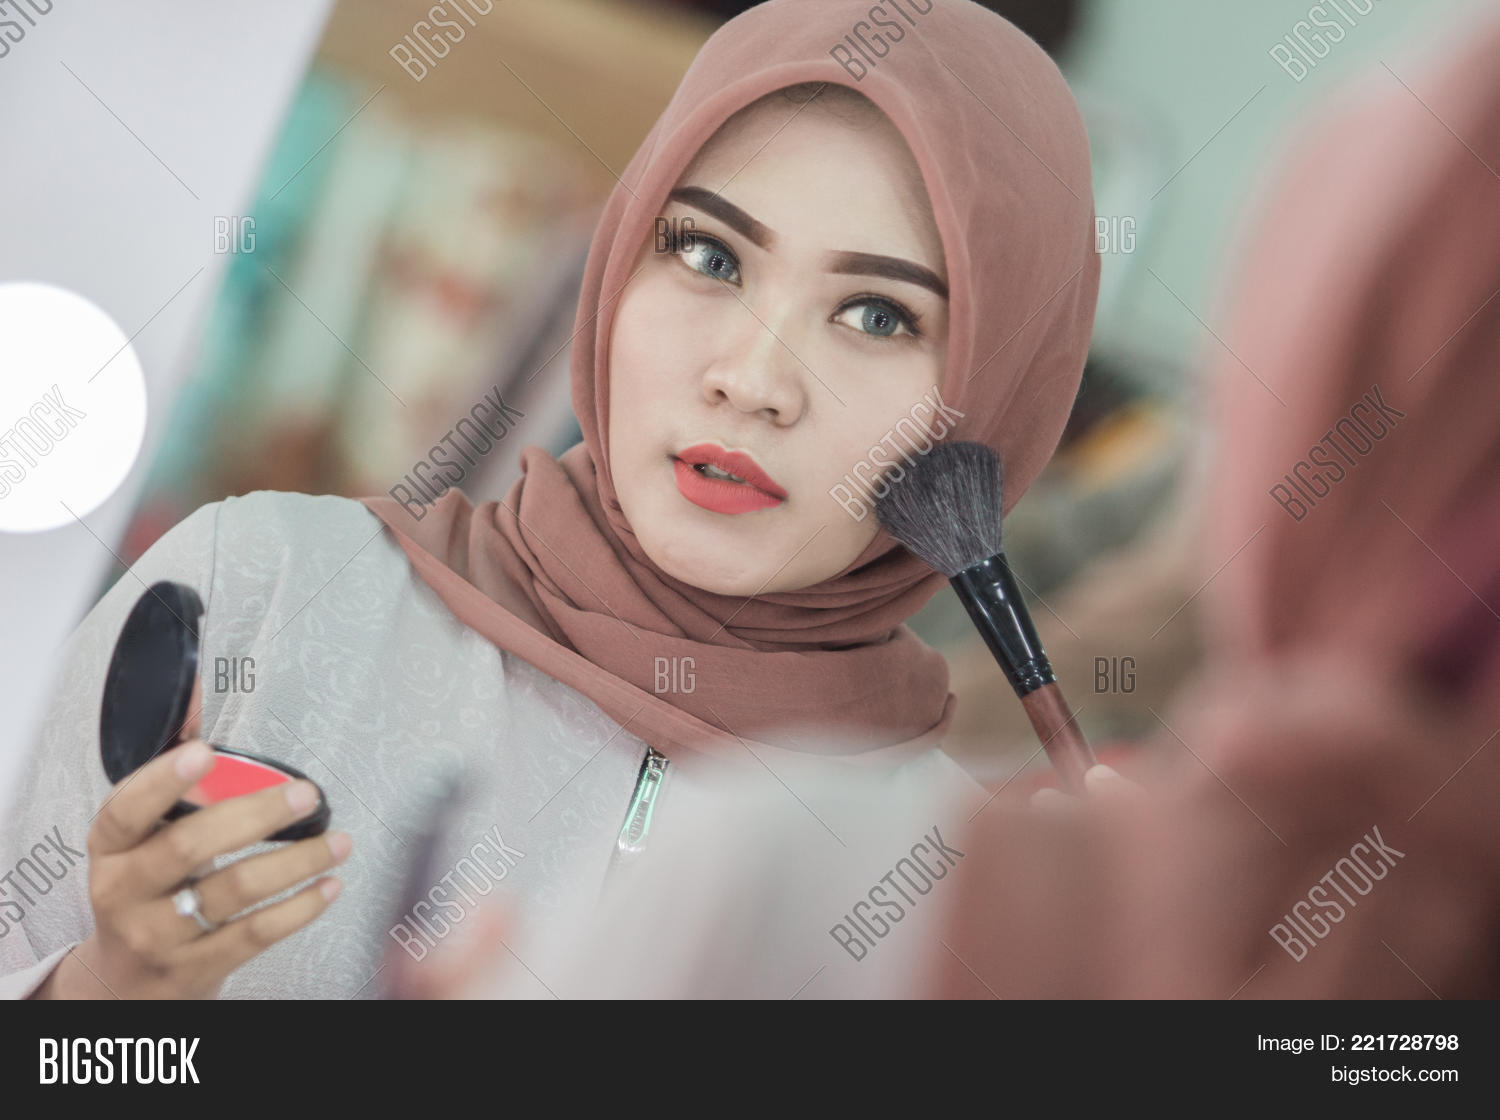 Beauty muslim woman with hijab applying makeup. Beautiful girl looking in  the mirror and applying